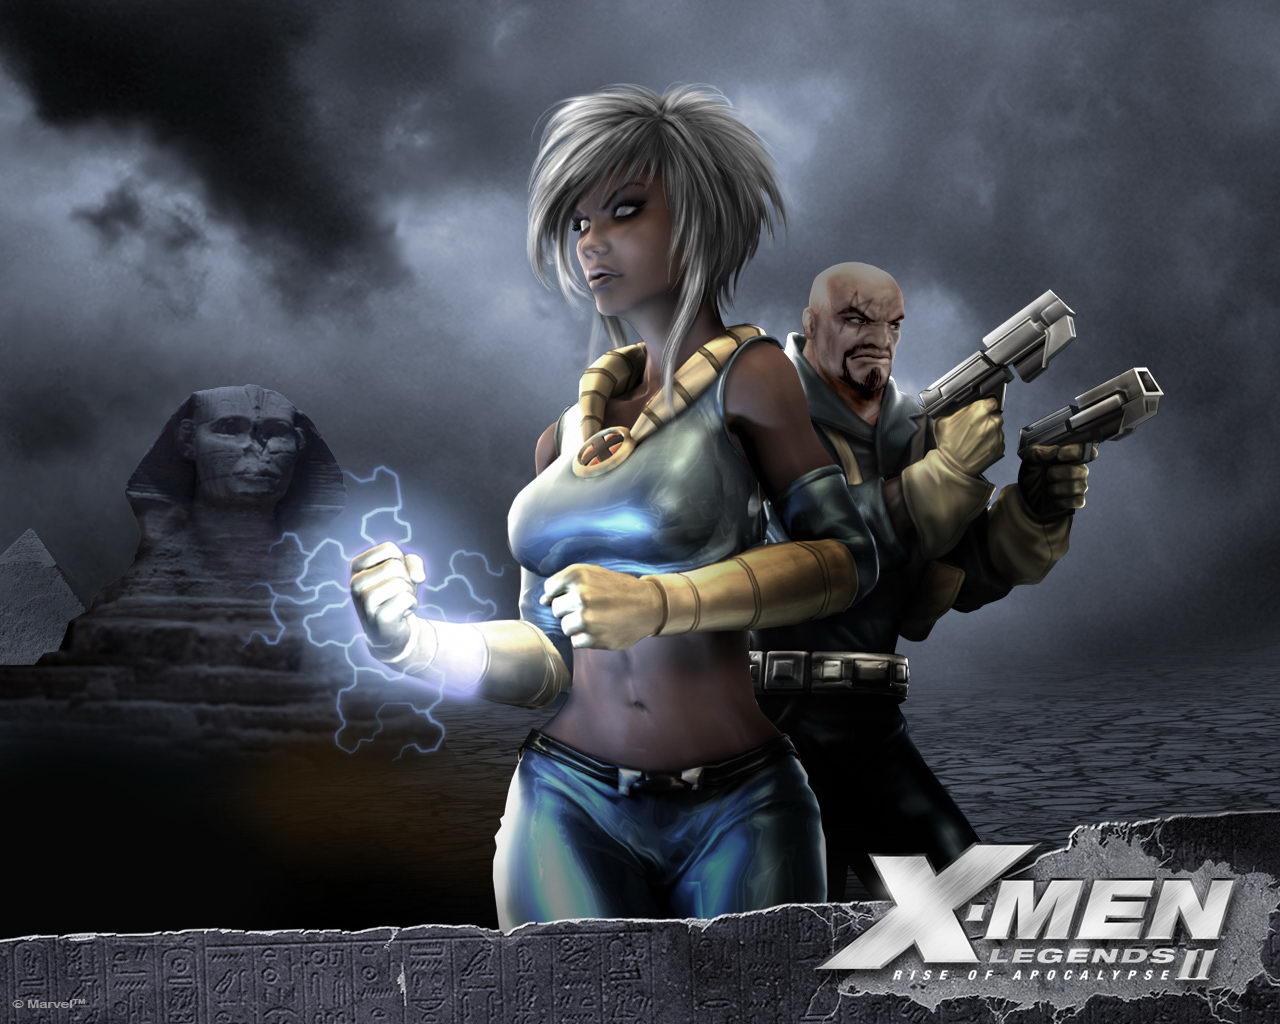 Ch X men Legends 2 Download Full 1280x1024